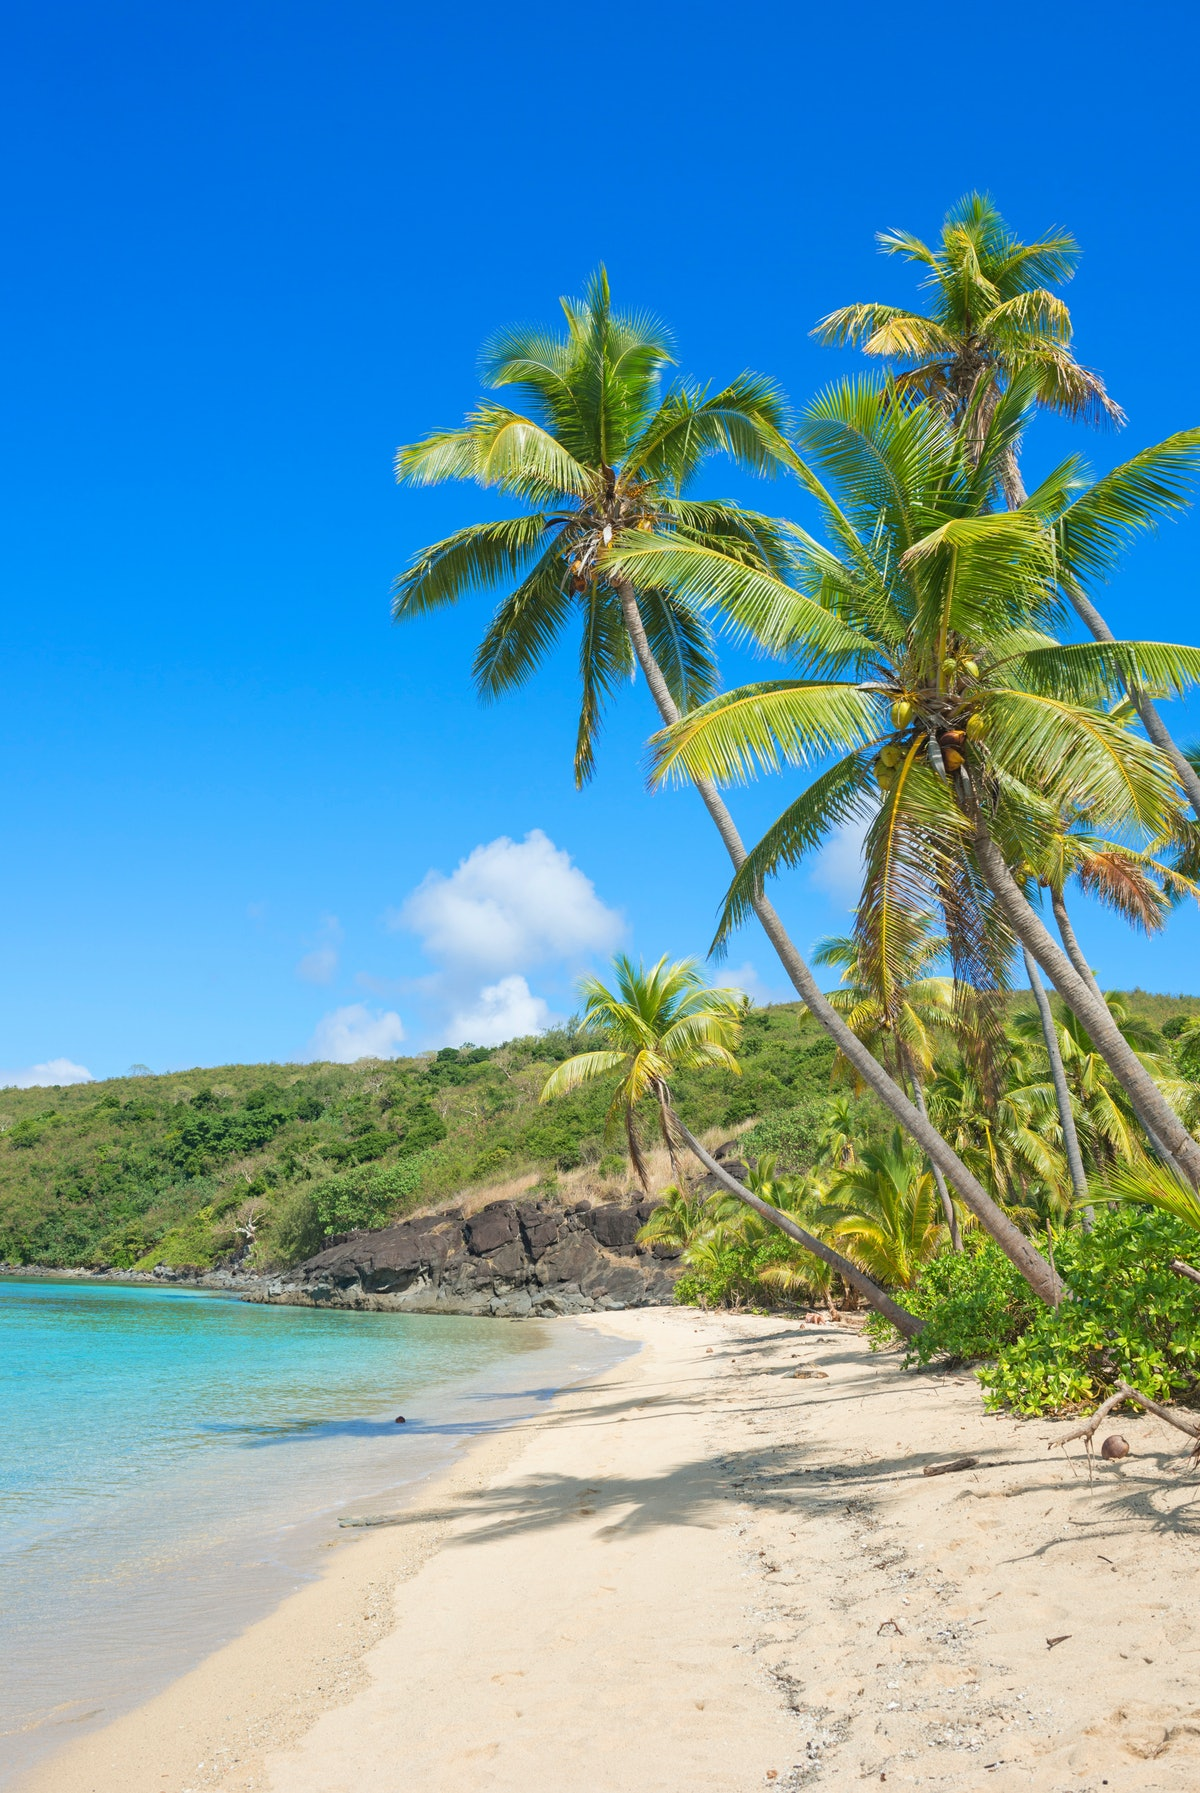 Fiji for Aries Vacation Spot